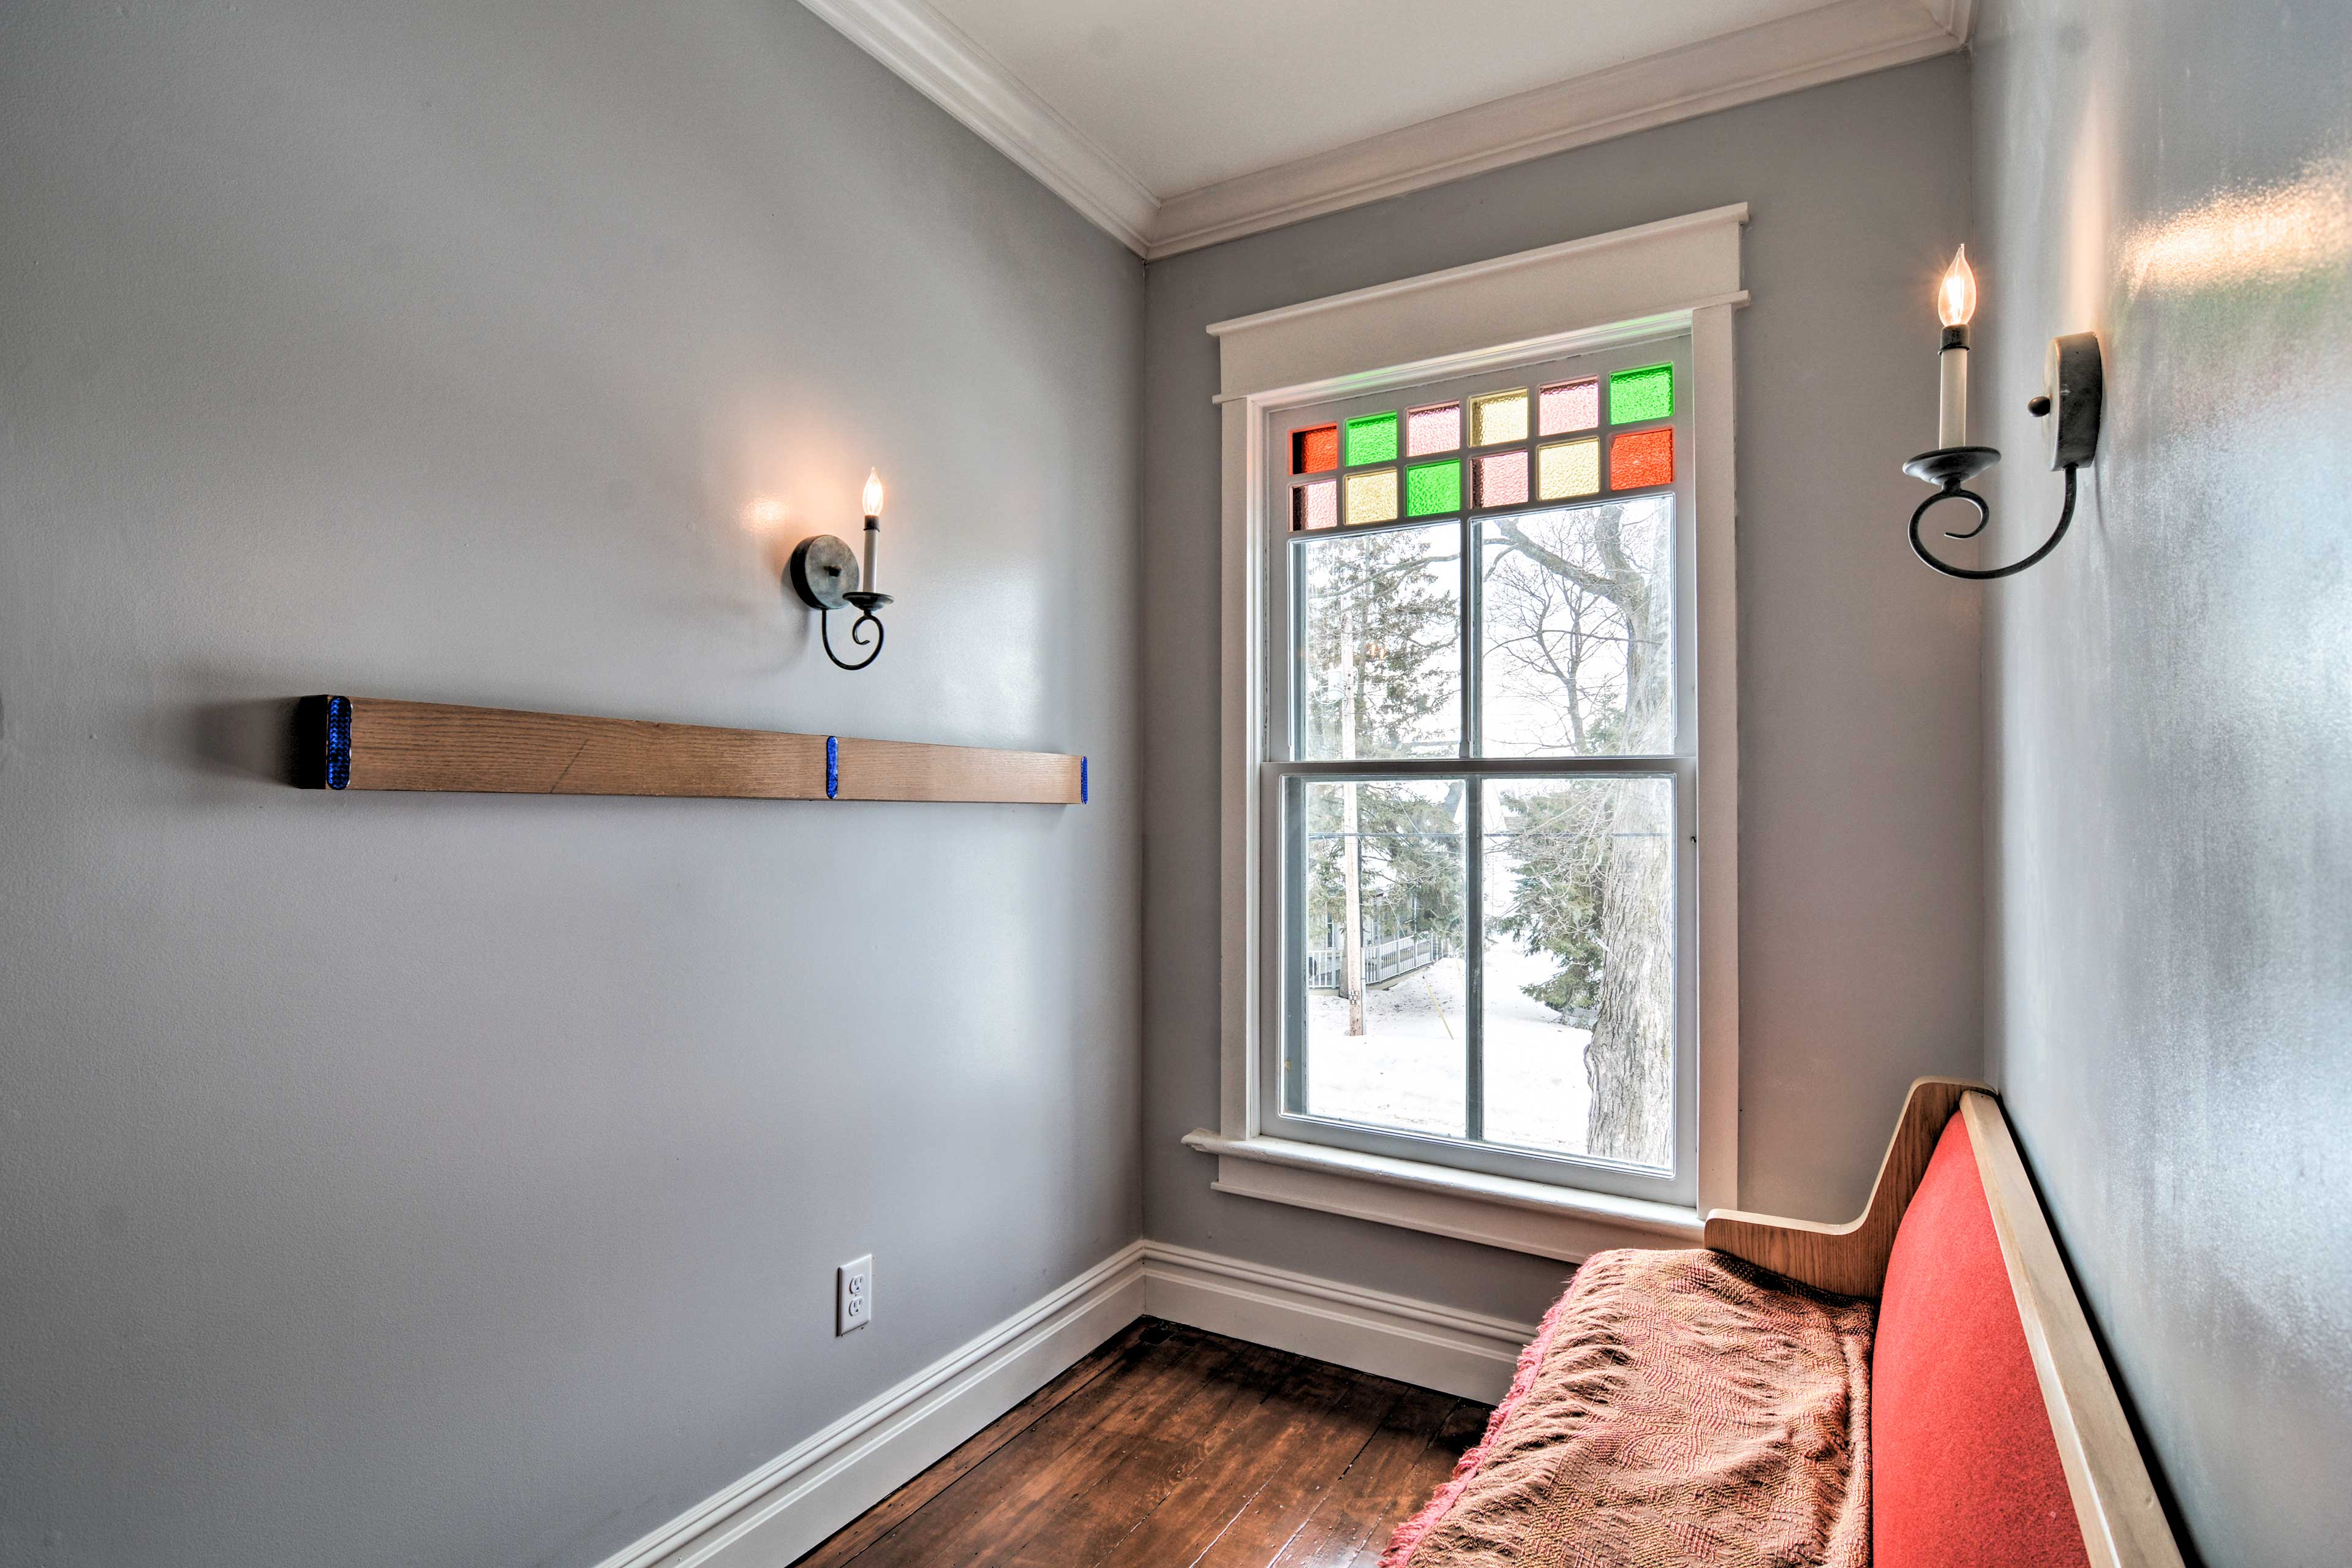 Enjoy some peace and quiet in this separate sitting room.